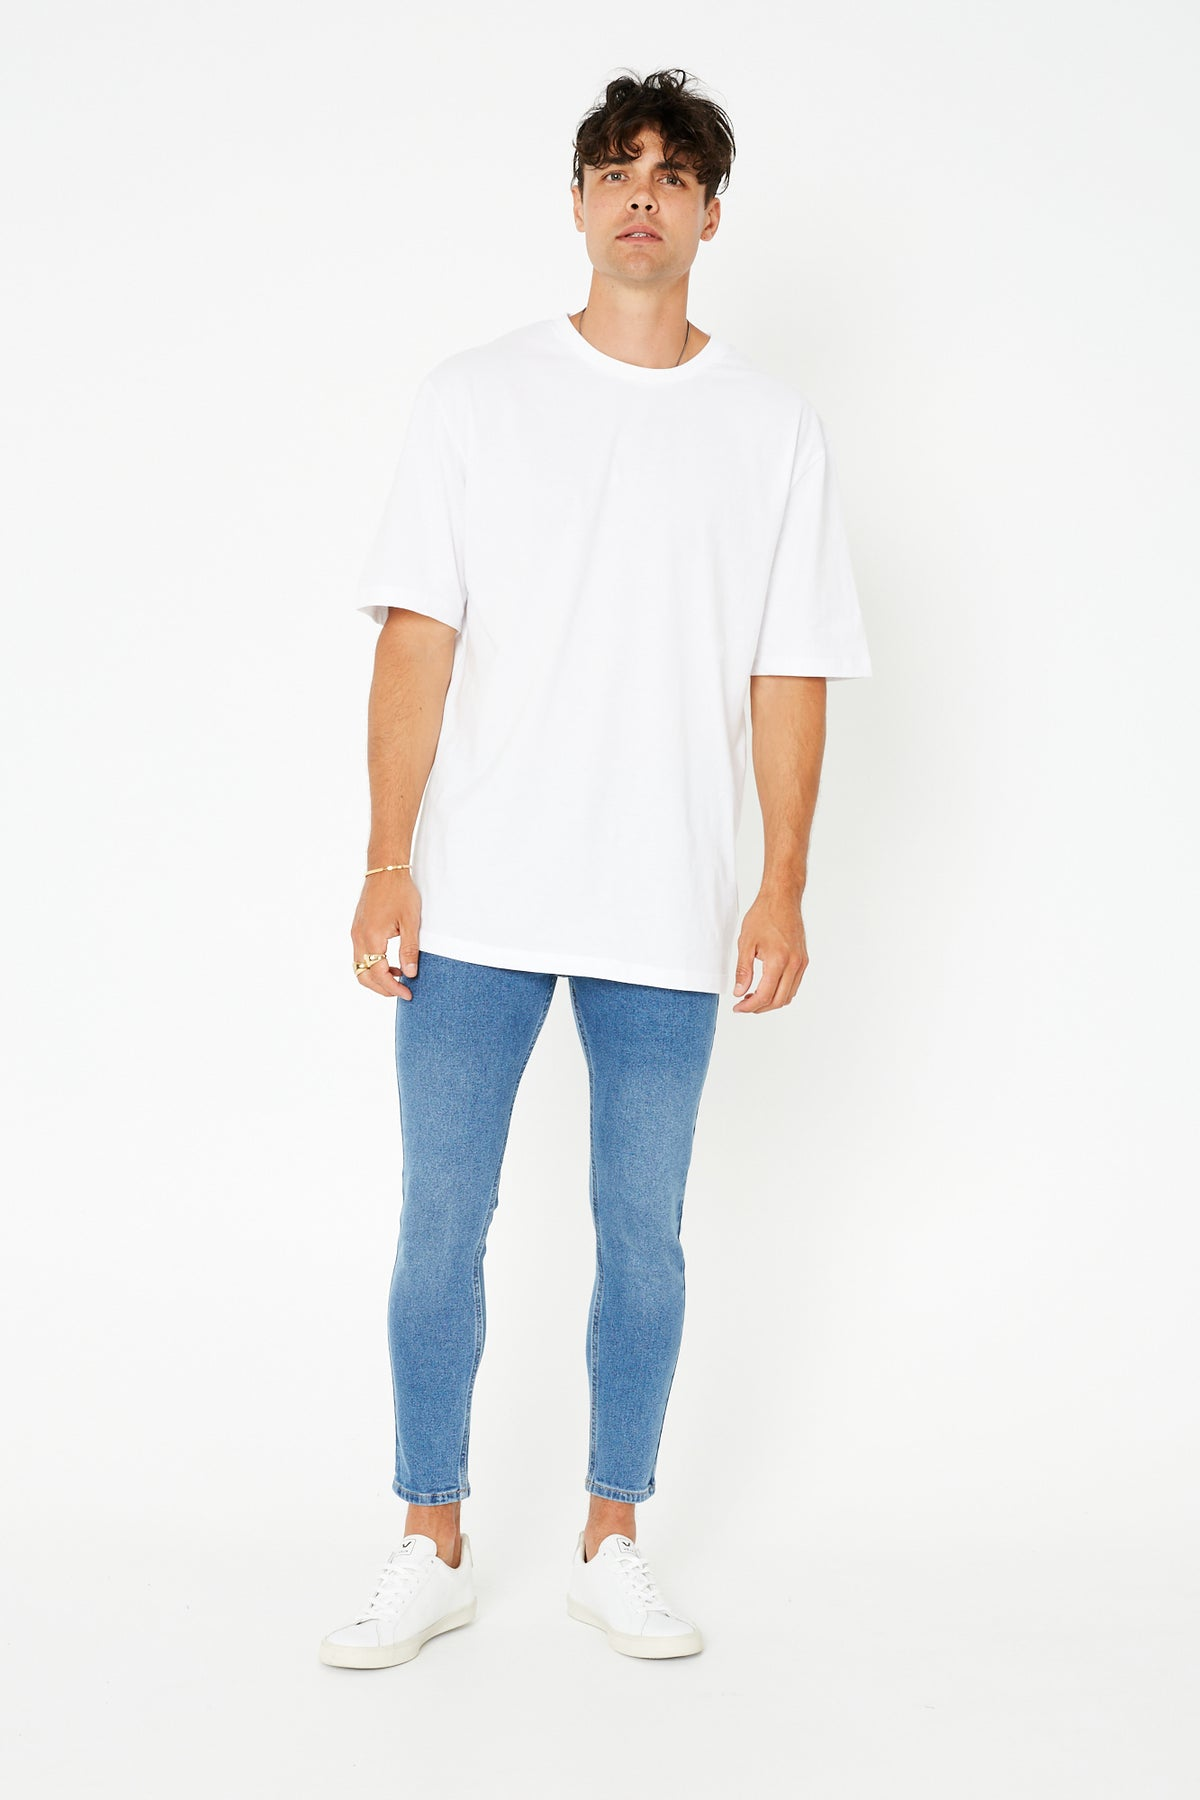 NTH Real Skinnys Mid Blue